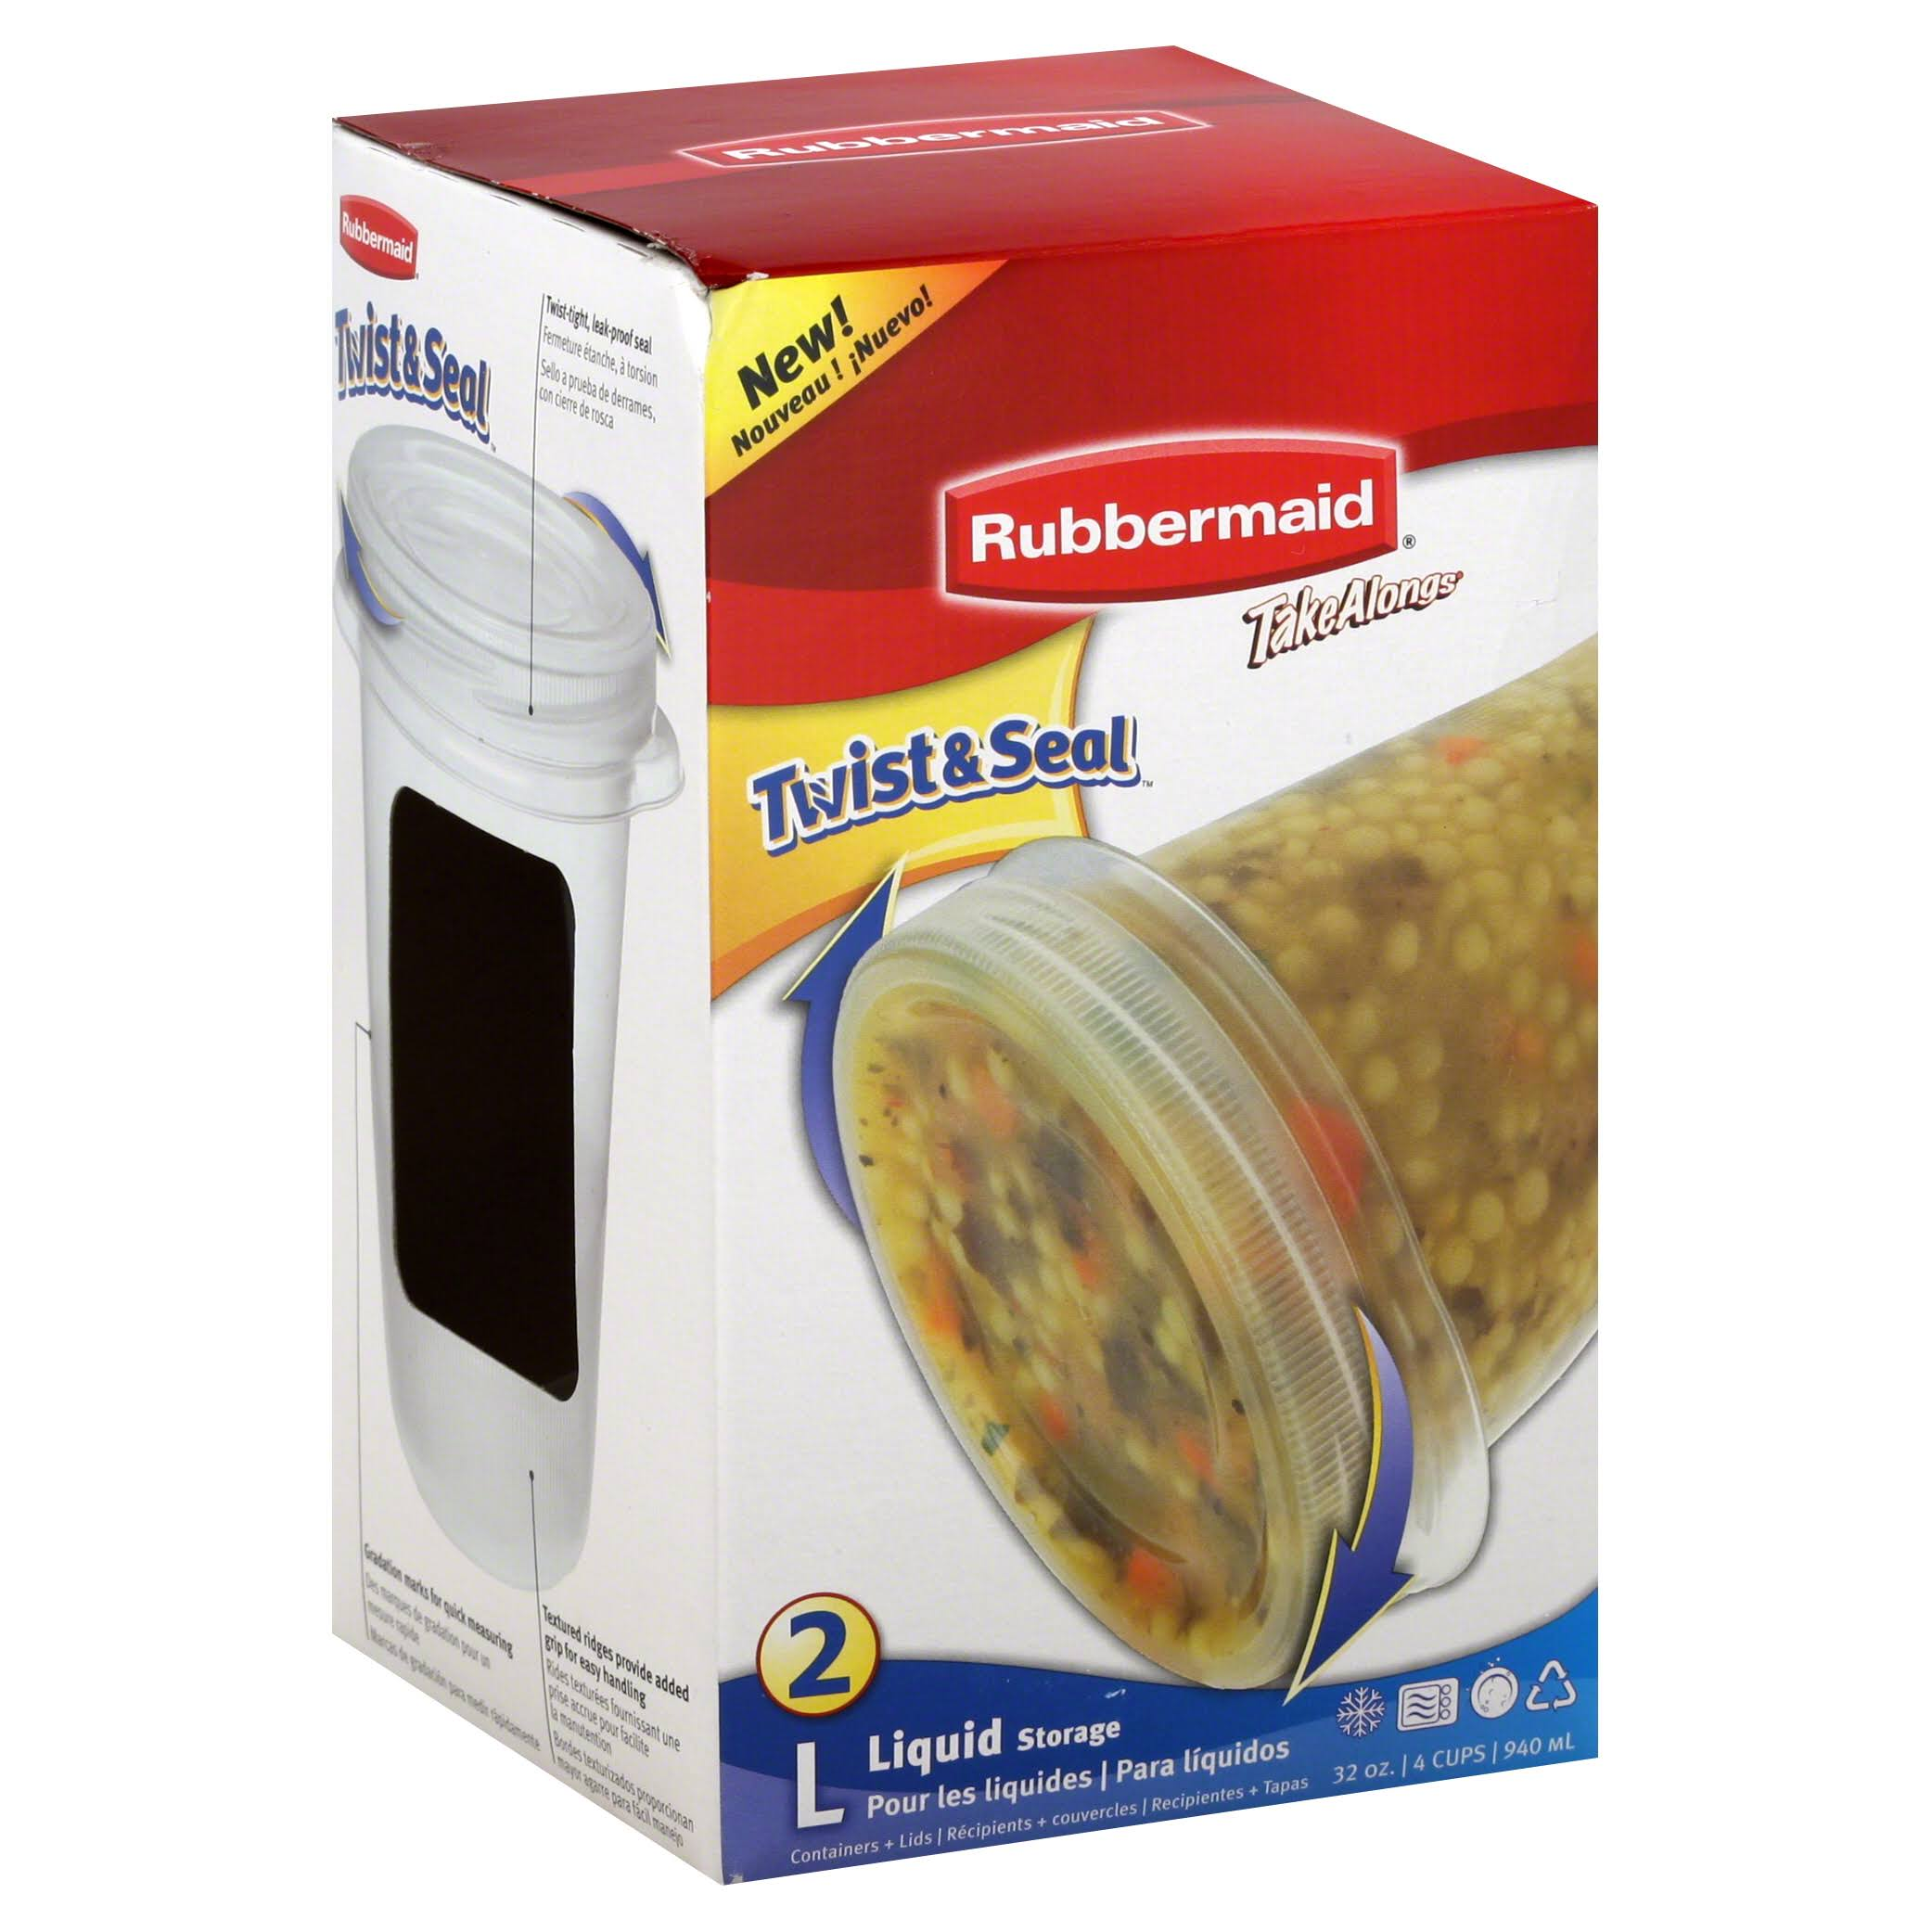 Rubbermaid Twist & Seal Container - Chili Red